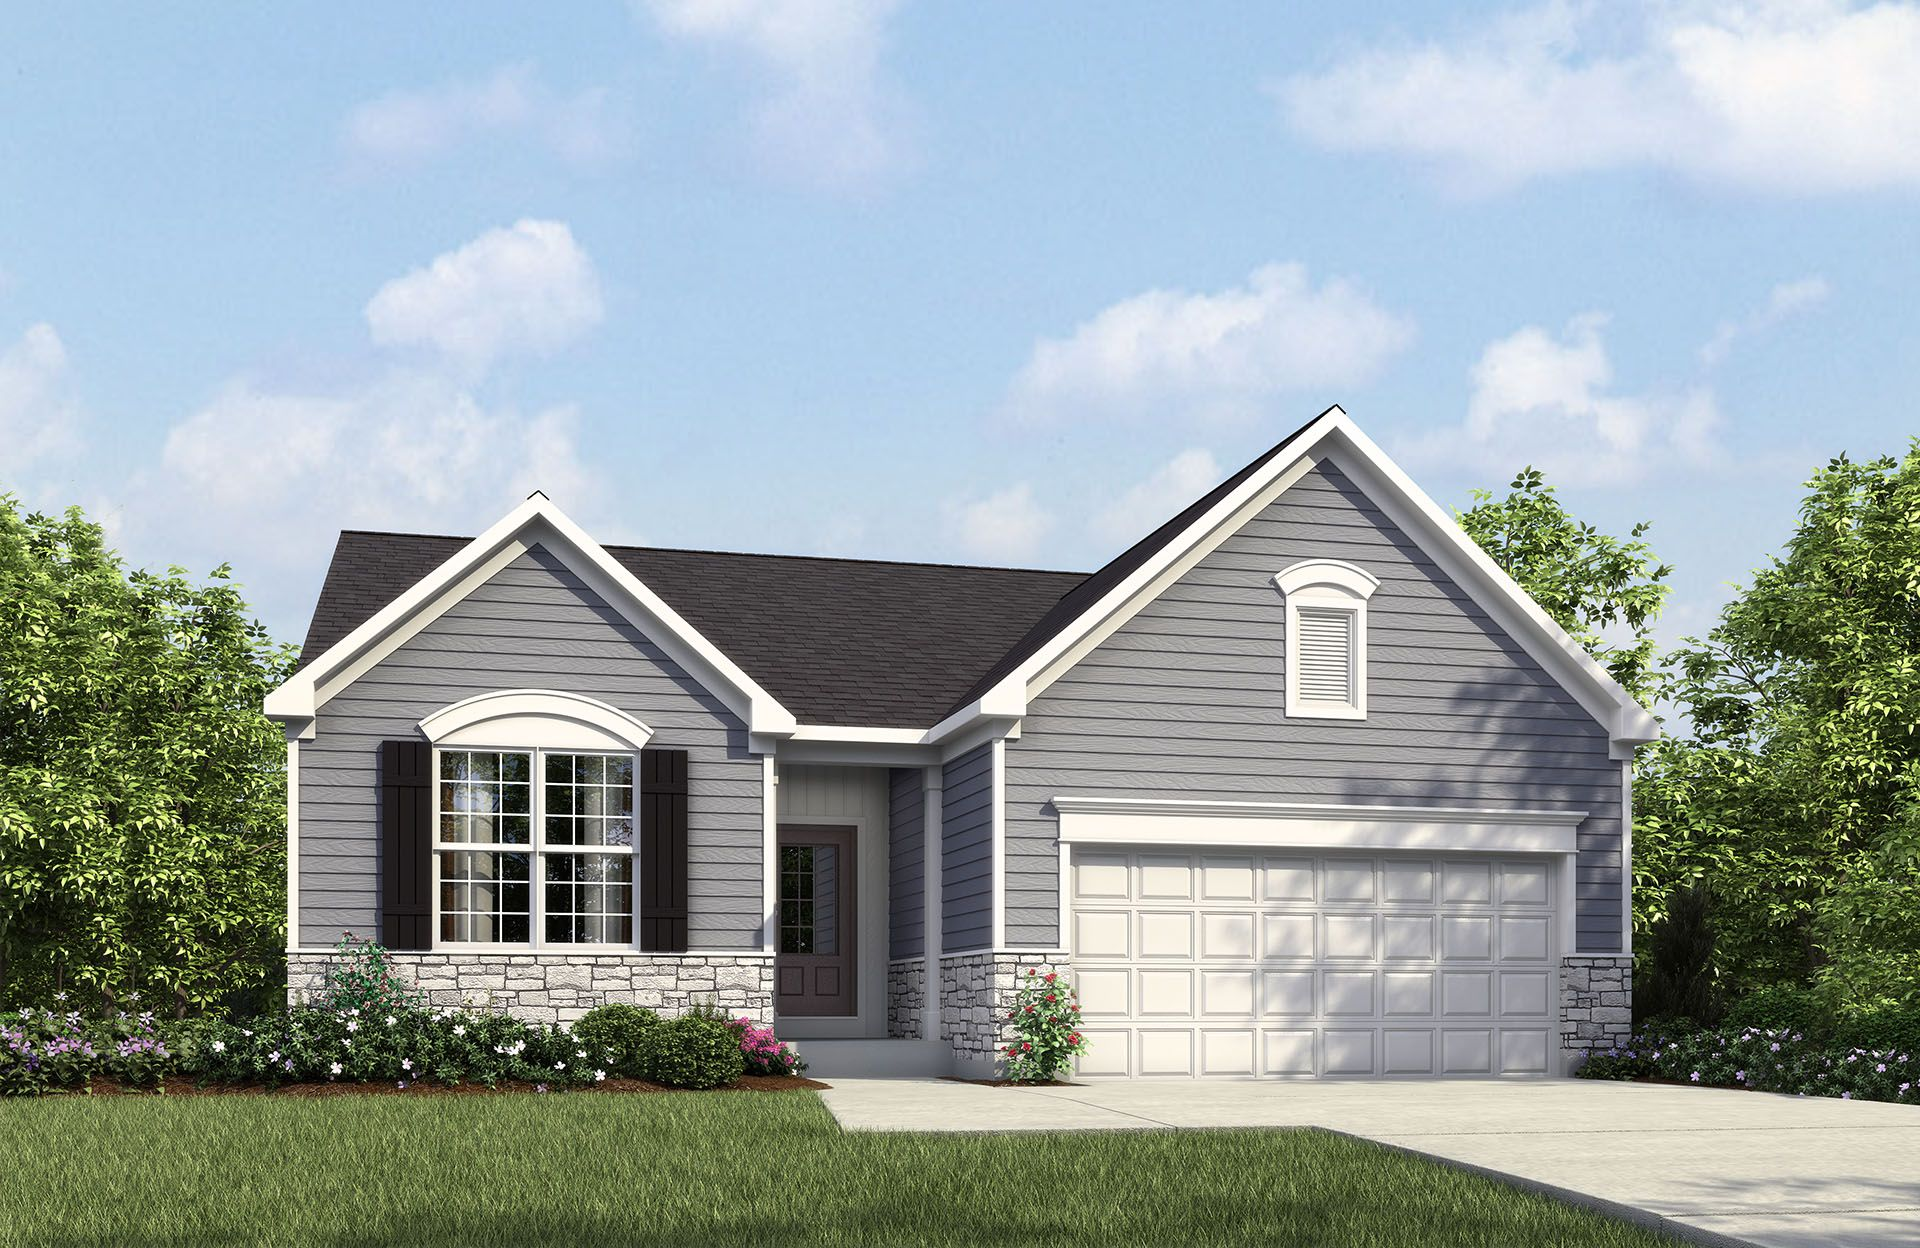 Single Family for Sale at Shepherds Crossing - Springdale 3777 Carmelle Woods Drive Mason, Ohio 45040 United States